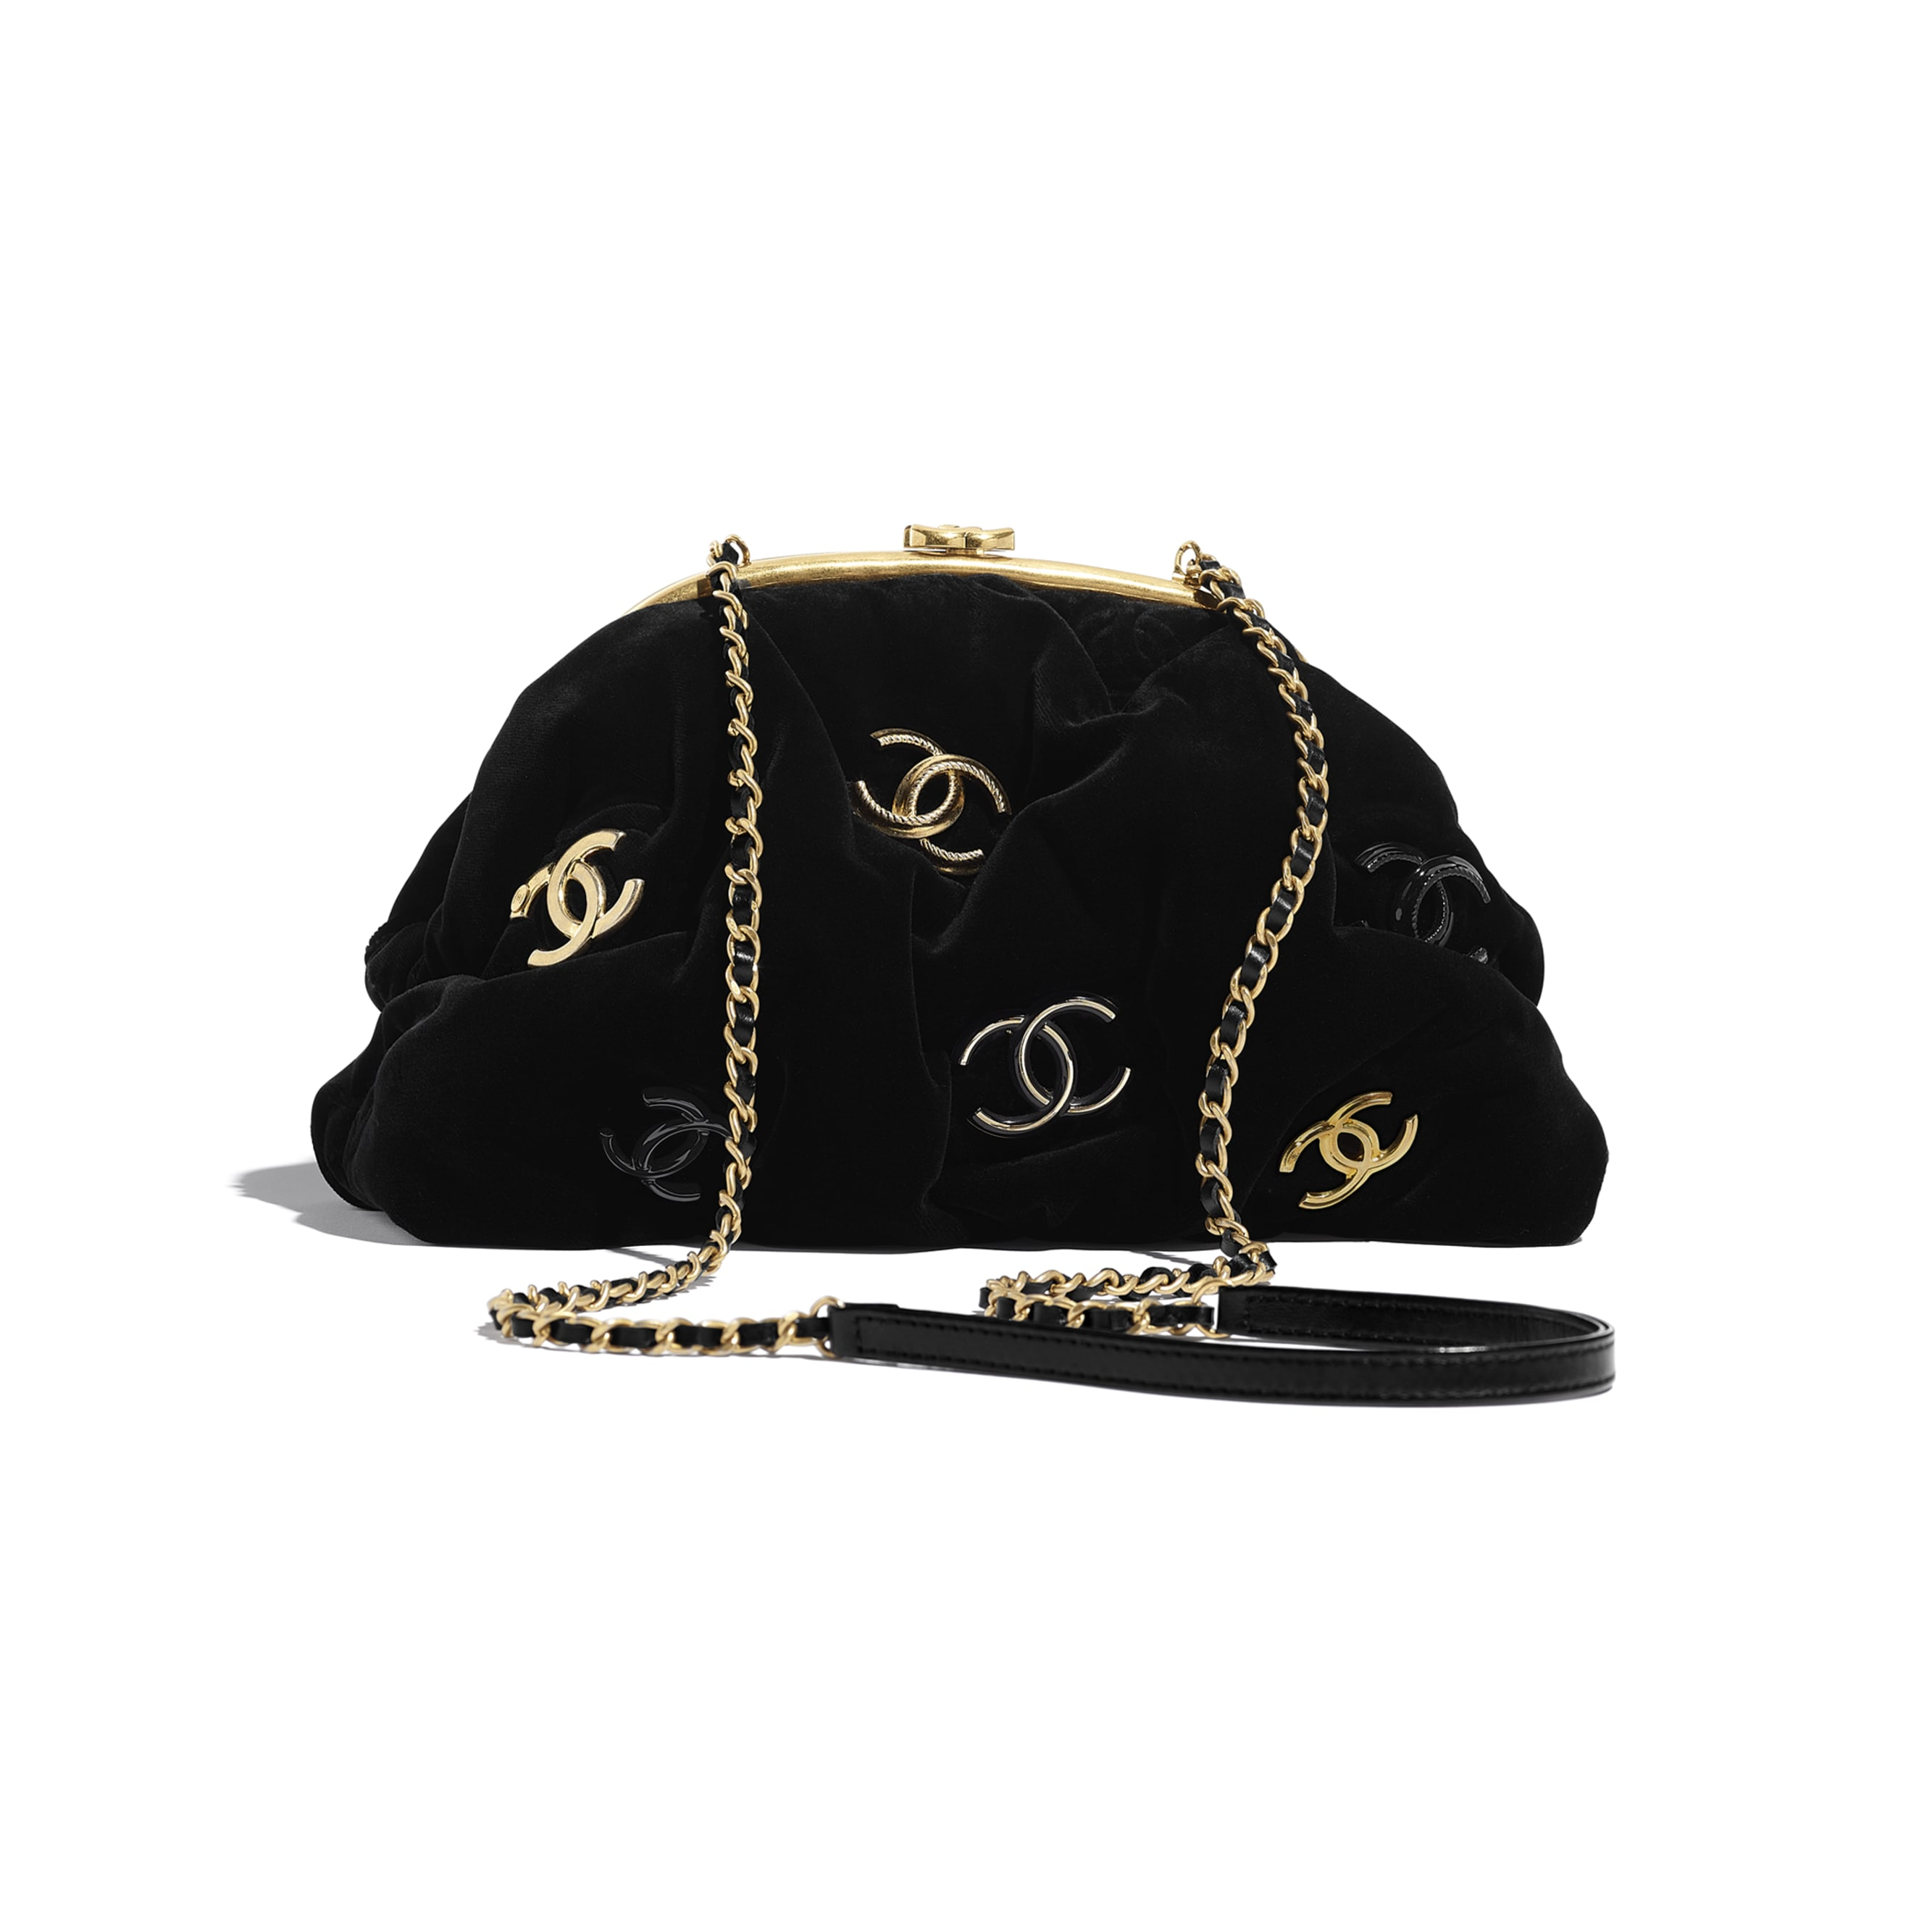 Clutch - Black - Velvet, Black & Gold-Tone Metal - CHANEL - Alternative view - see standard sized version